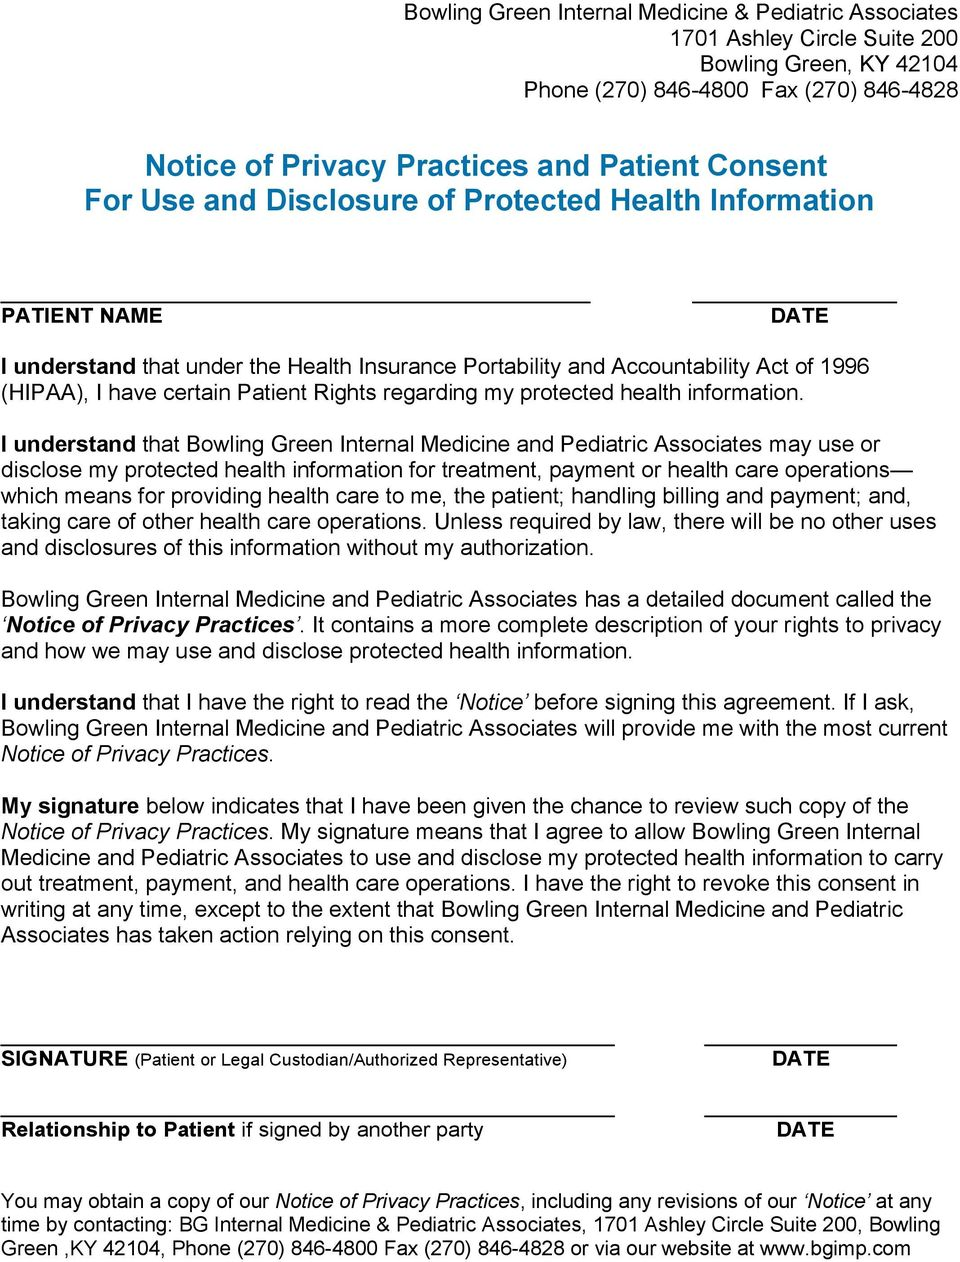 regarding my protected health information.